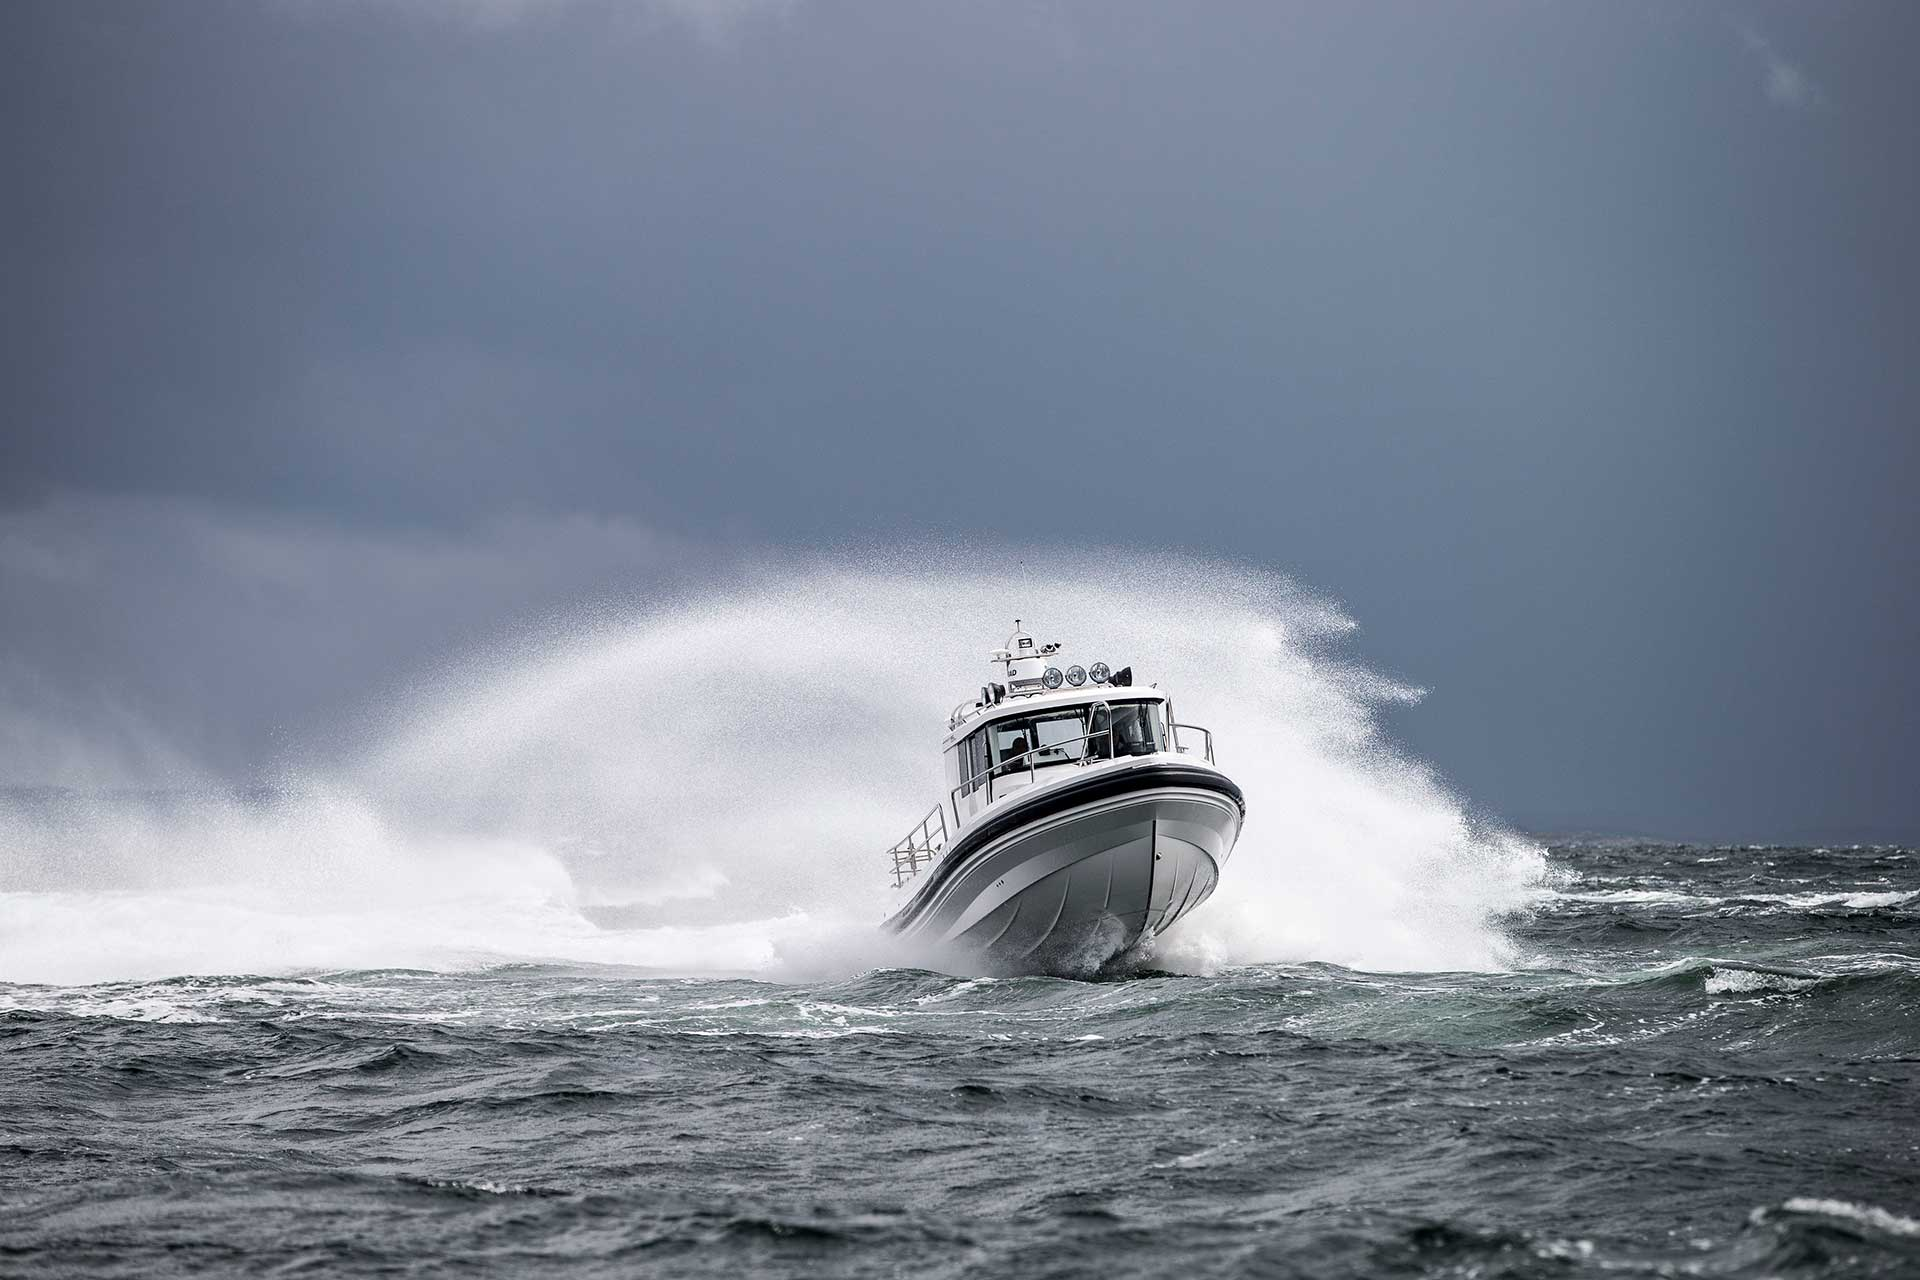 Paragon Motorboat out on the sea with small waves